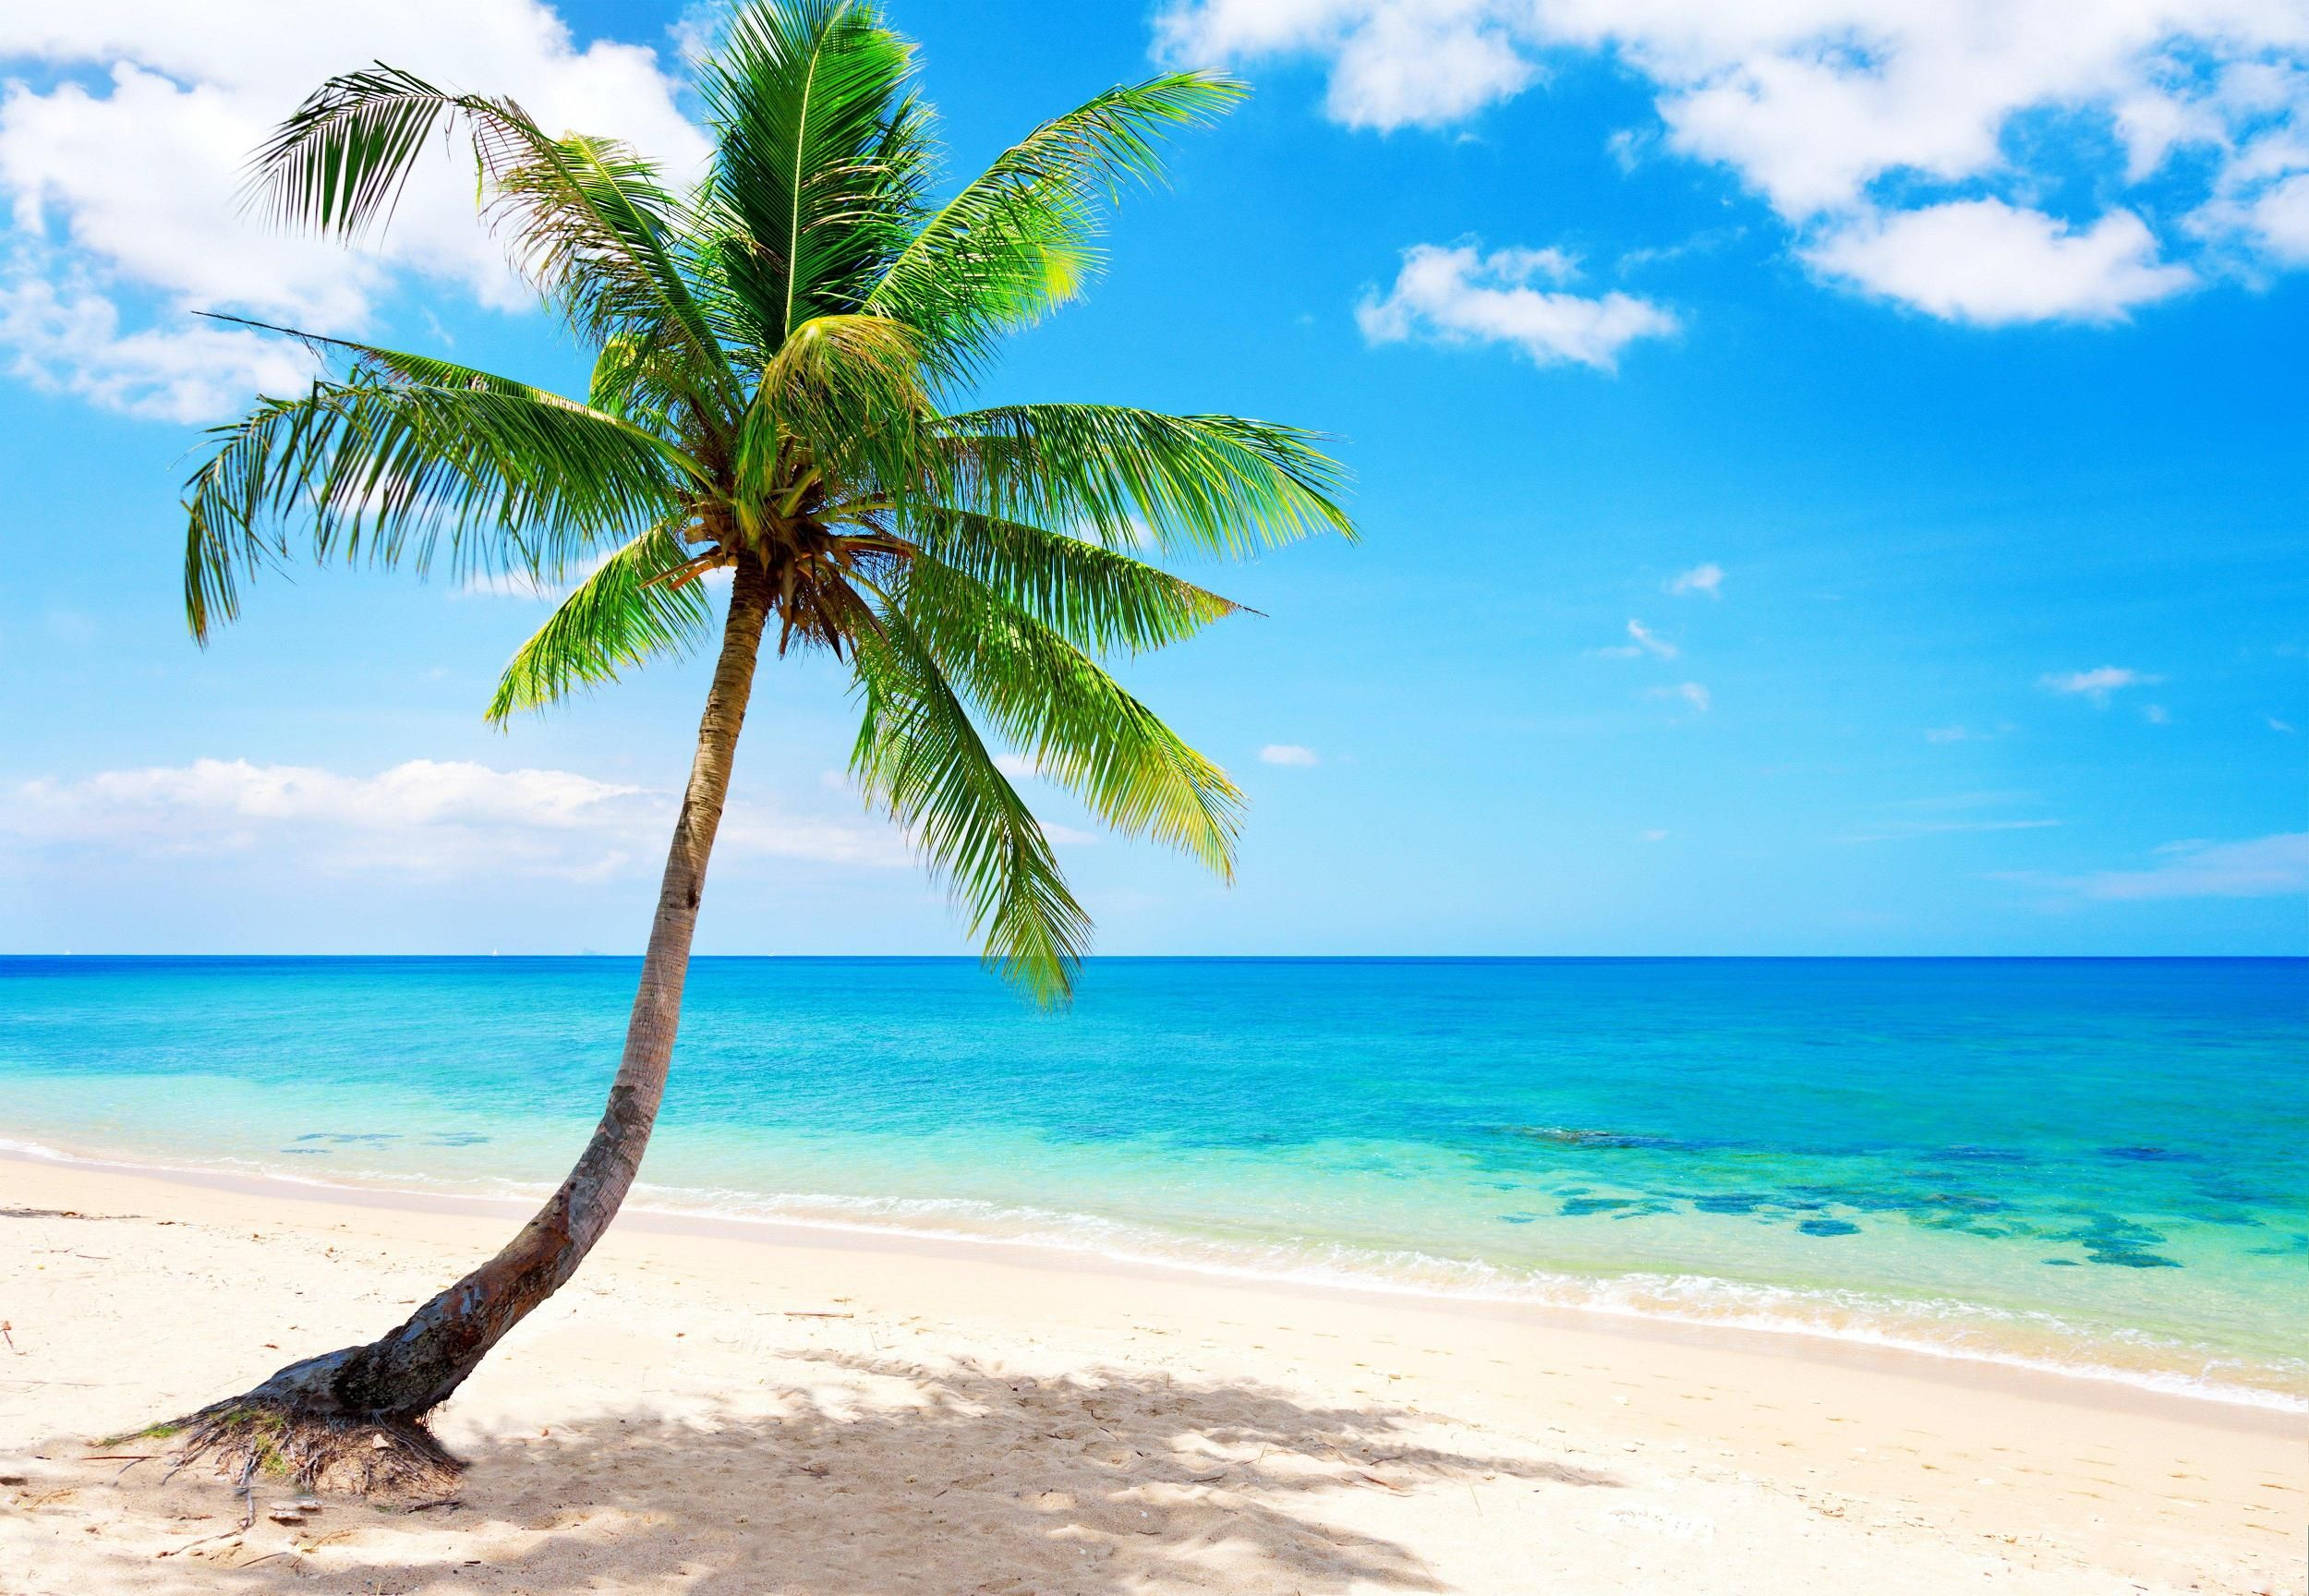 Tropical Beaches With Palm Trees S Wallpapers Photo Jllsly Beach Wallpaper Palm Trees Beach Beach Wall Decals